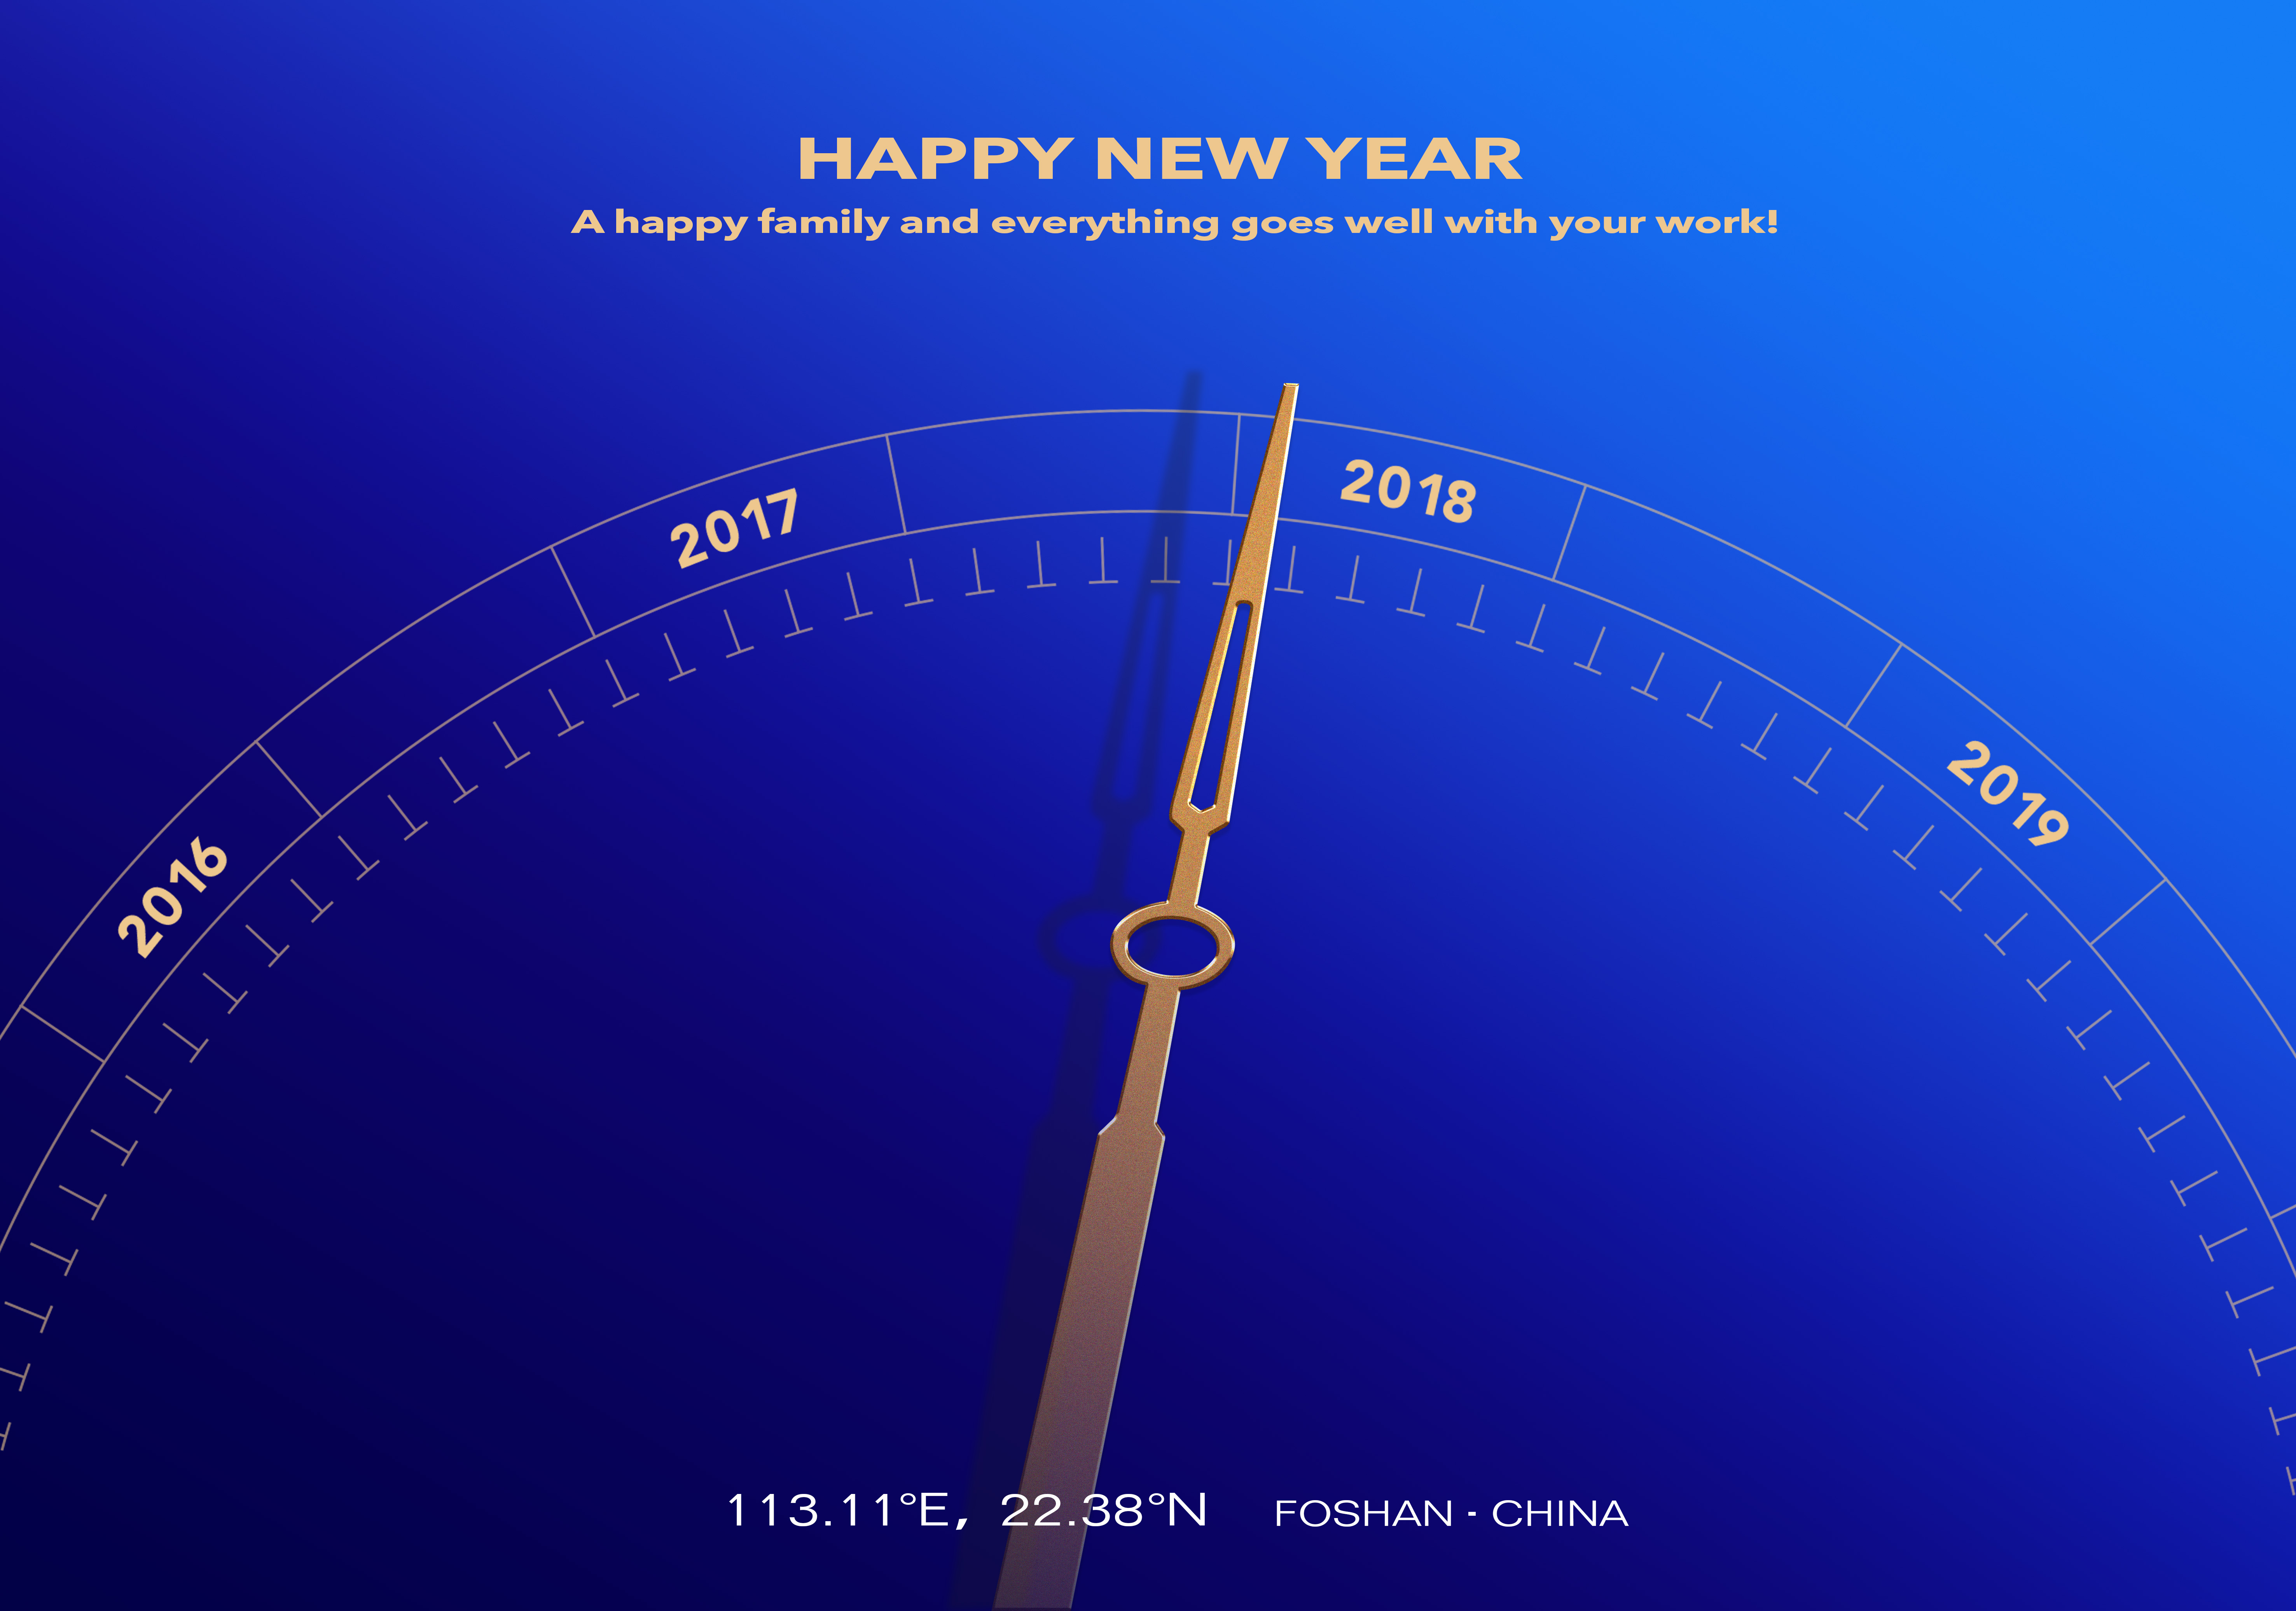 The New Year message of 2018 from the Chairman Cuhui Dai